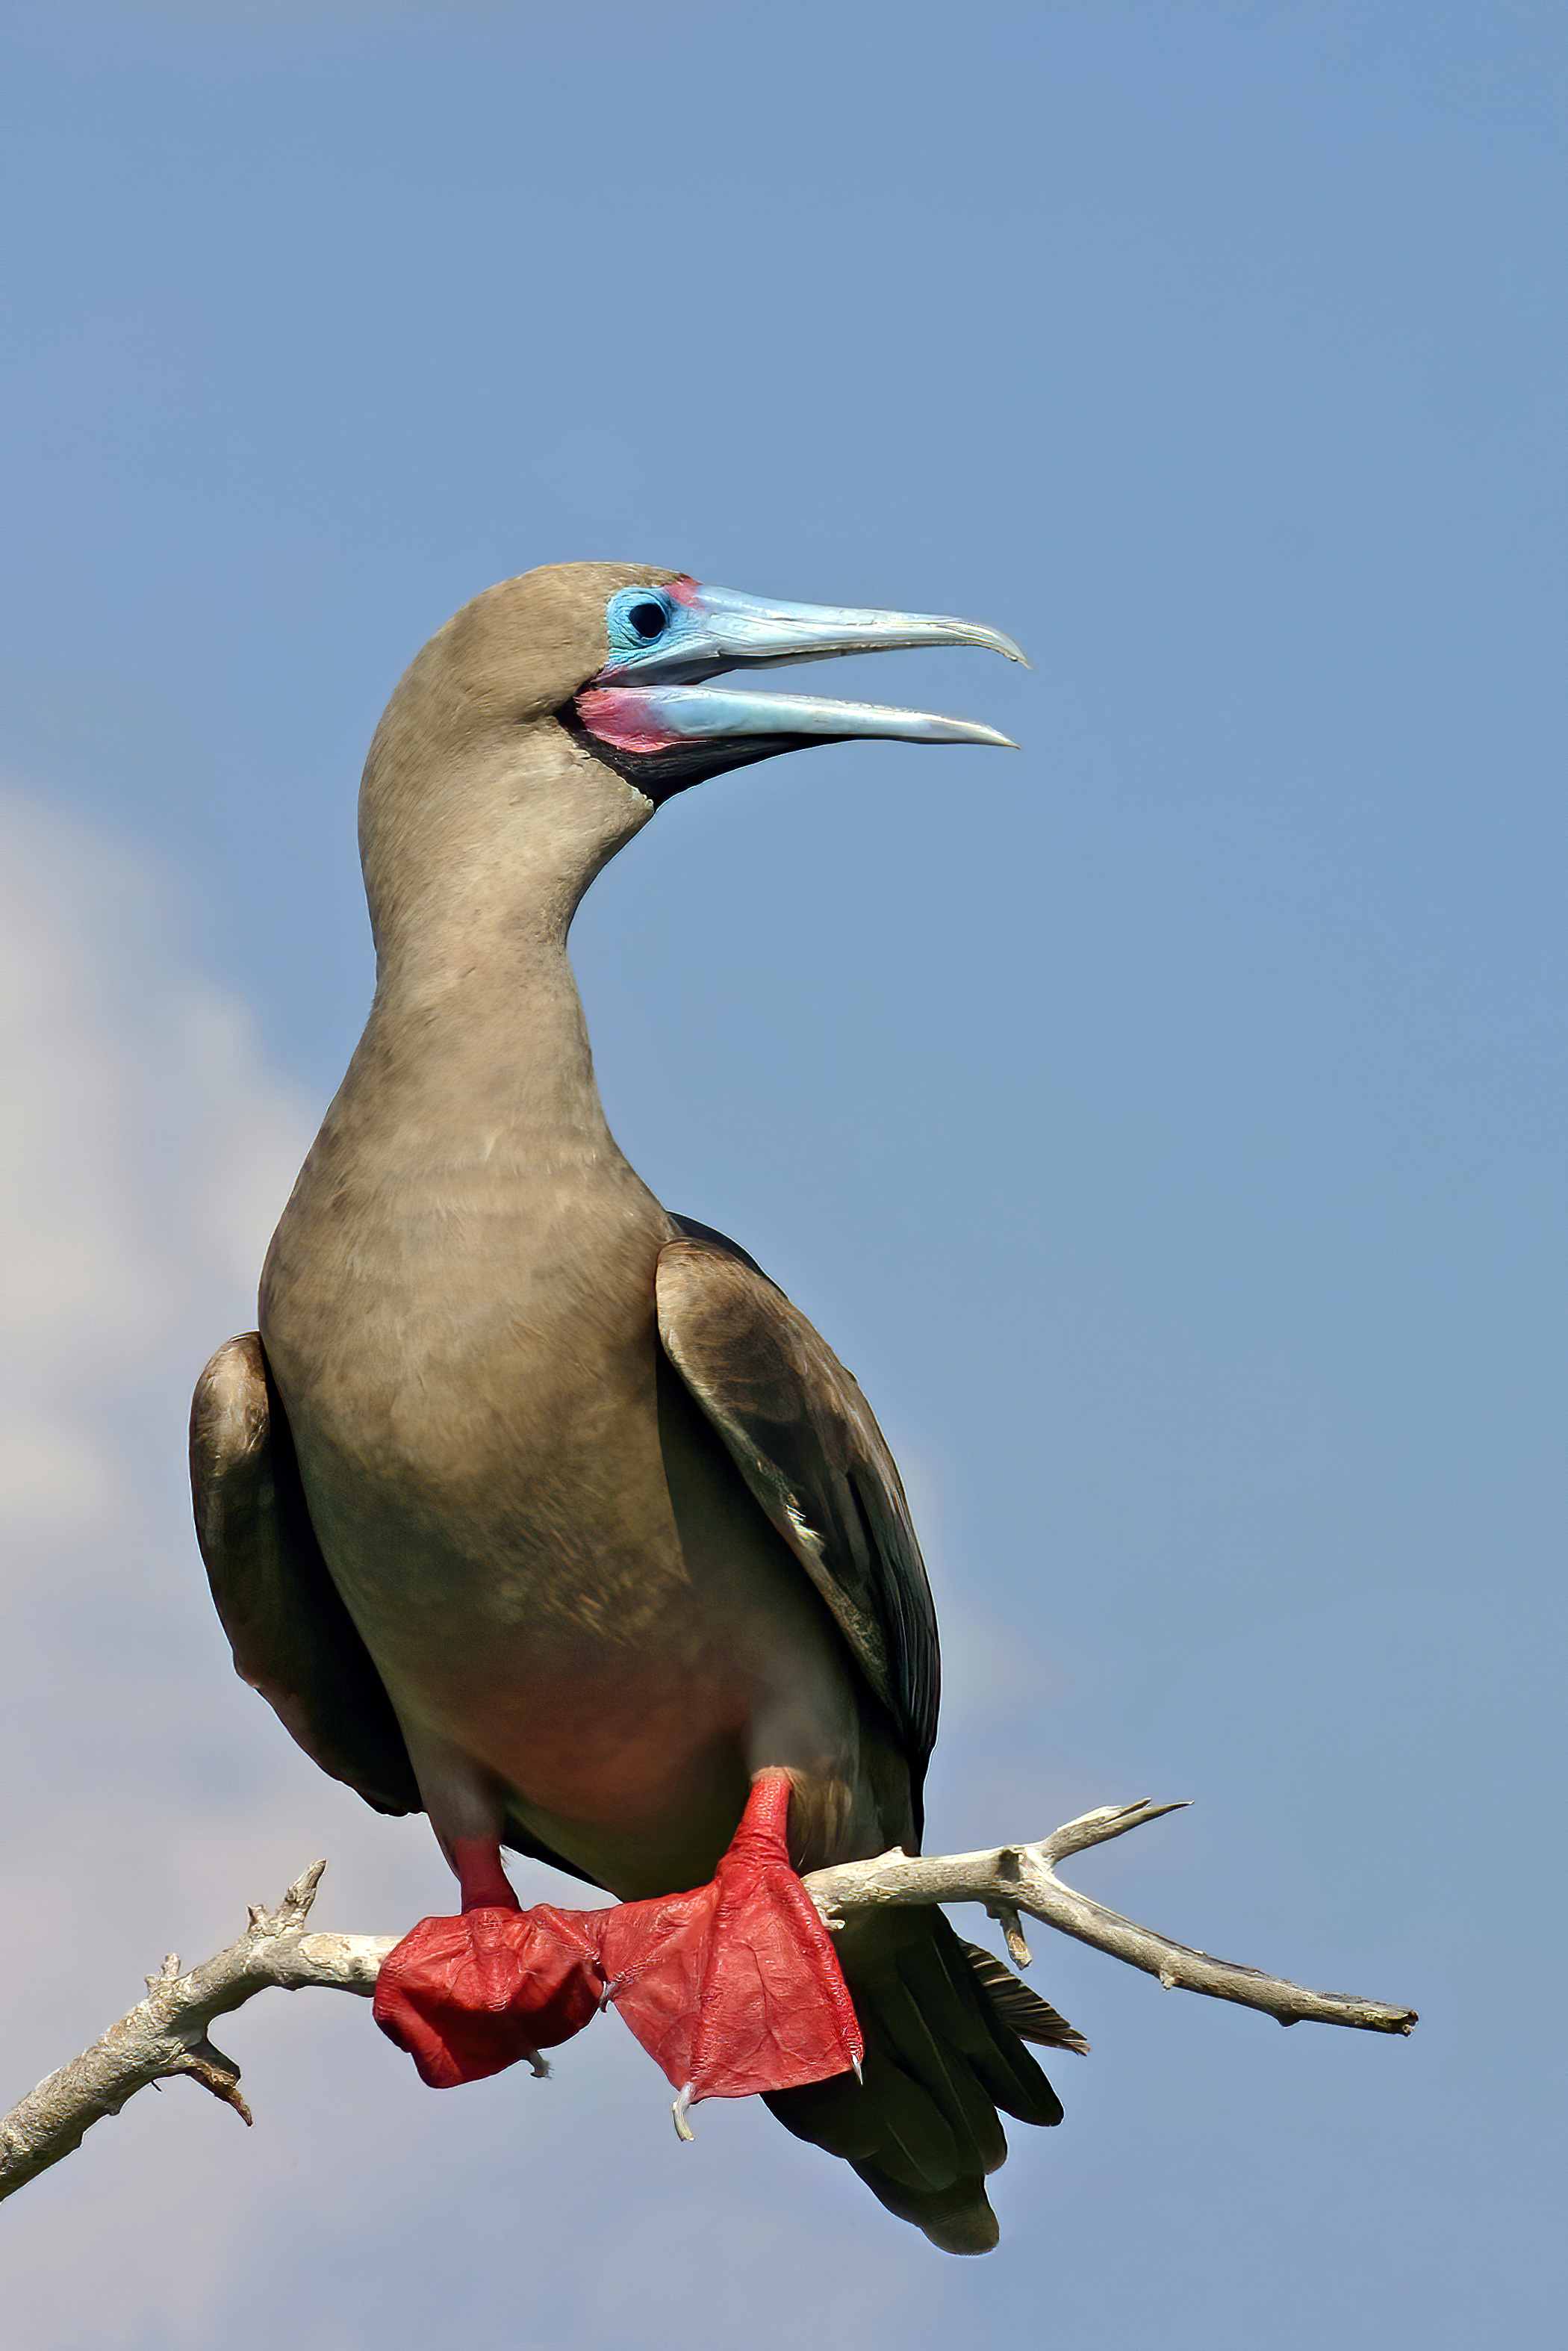 https://upload.wikimedia.org/wikipedia/commons/f/f9/Male_Gal%C3%A1pagos_red-footed_booby.jpg